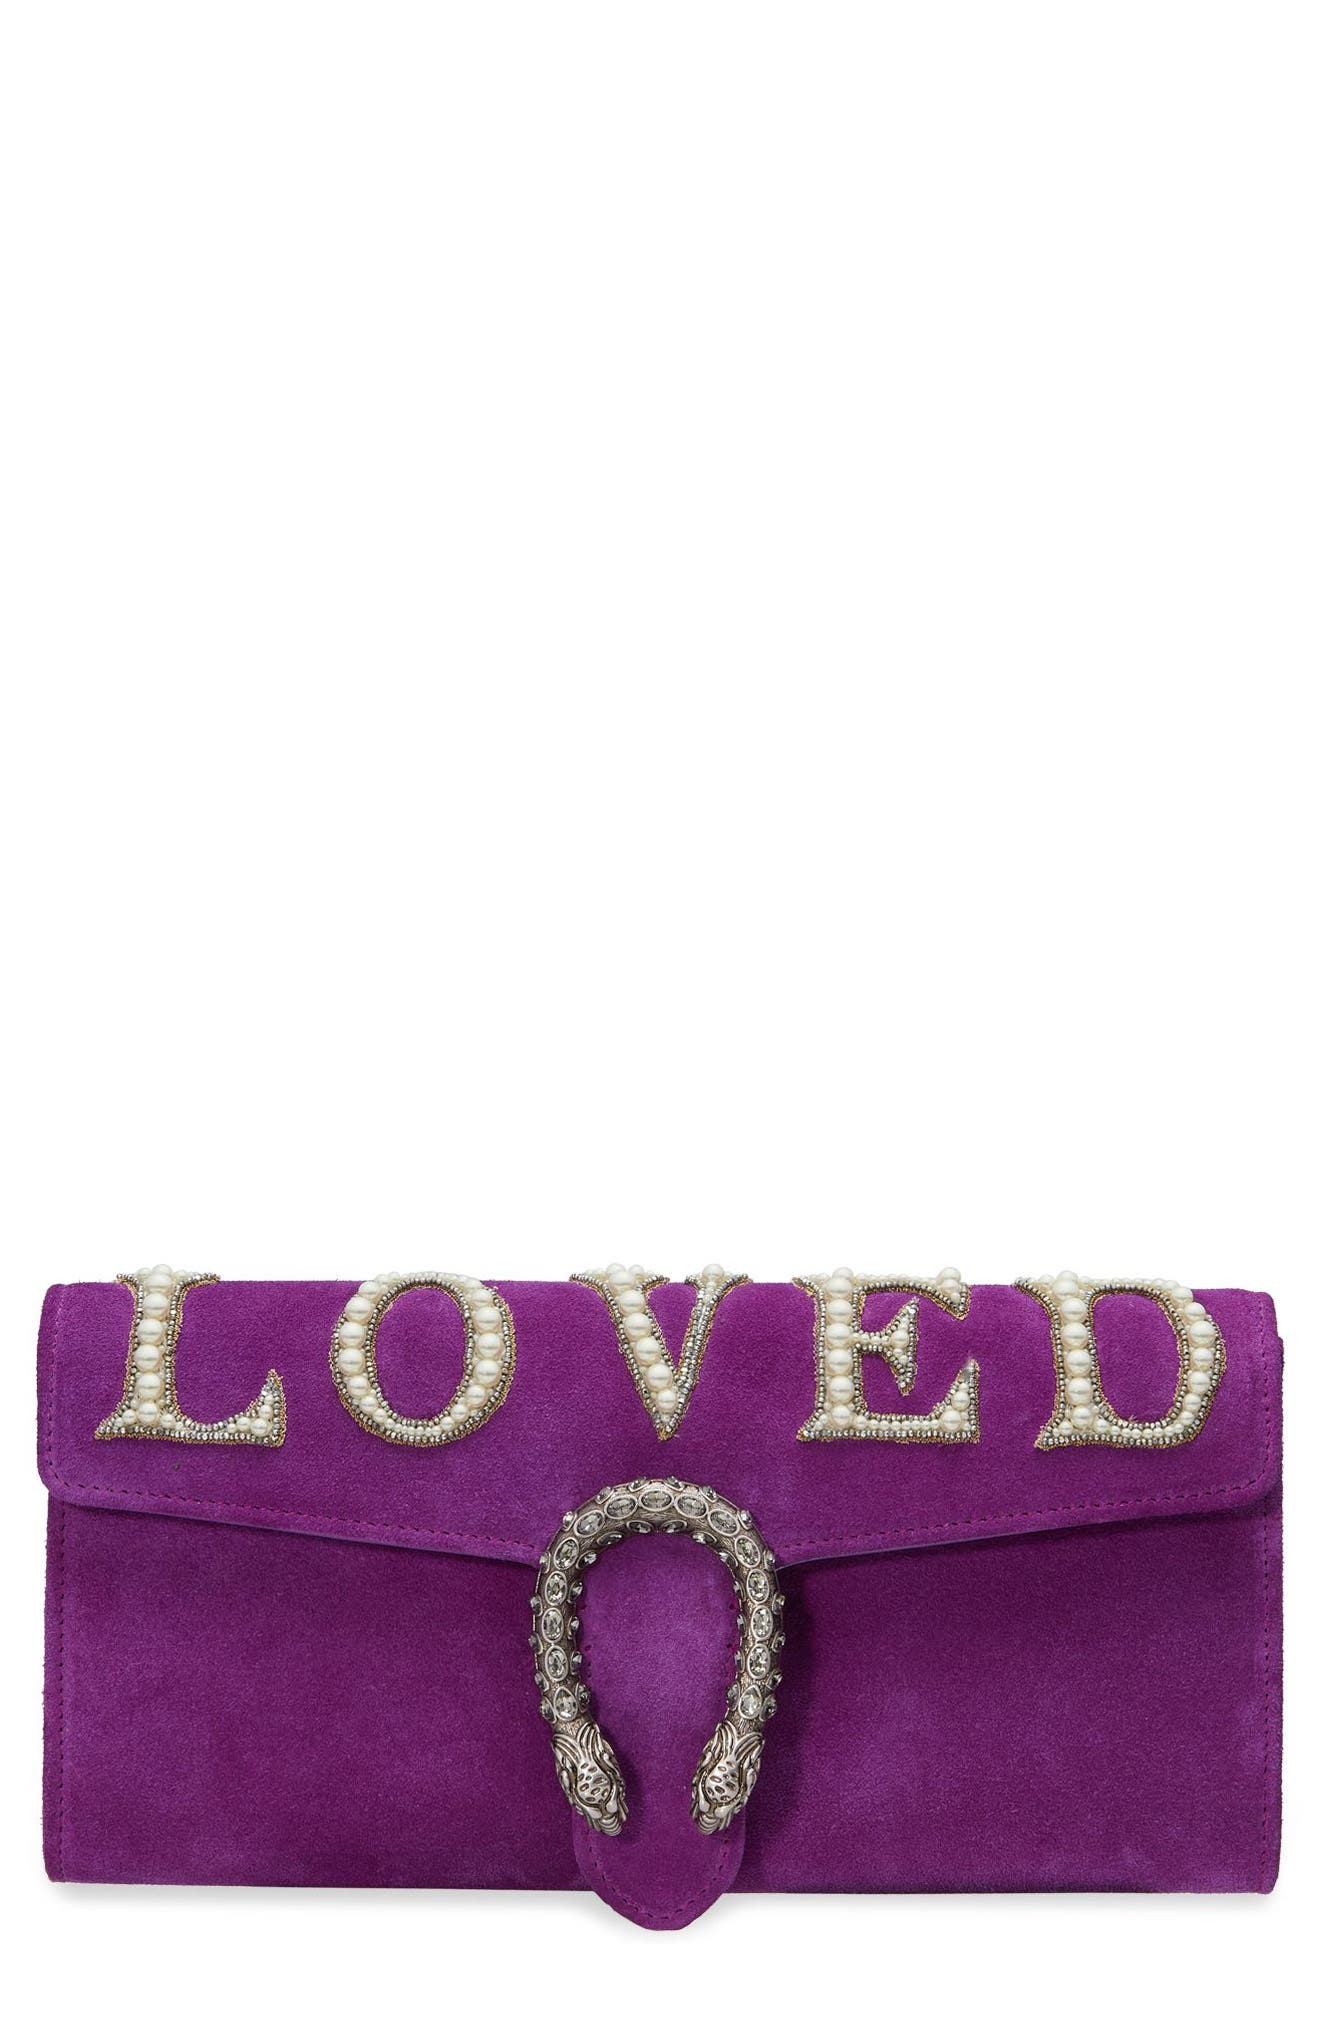 Dionysus Suede Clutch,                             Main thumbnail 1, color,                             559